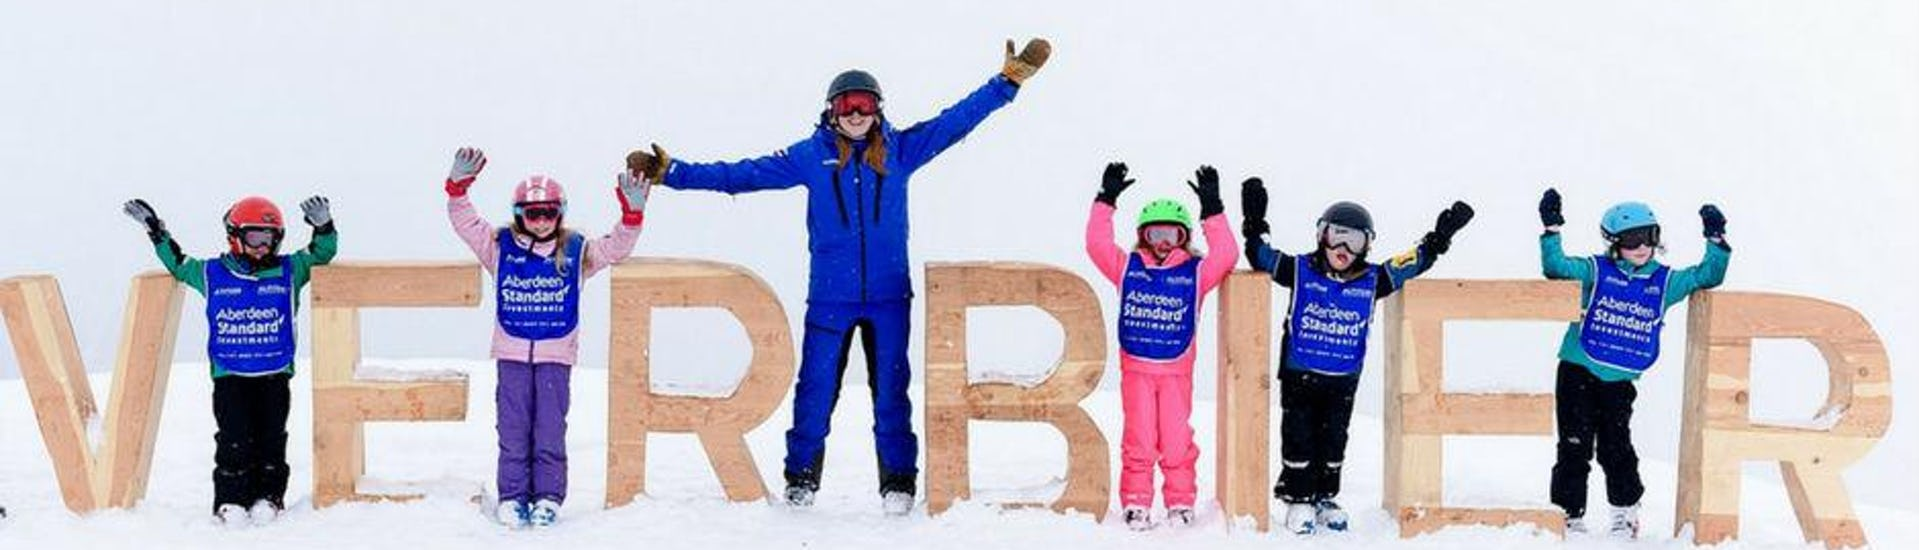 Ski Lessons for Kids (6-15 years) - All Levels